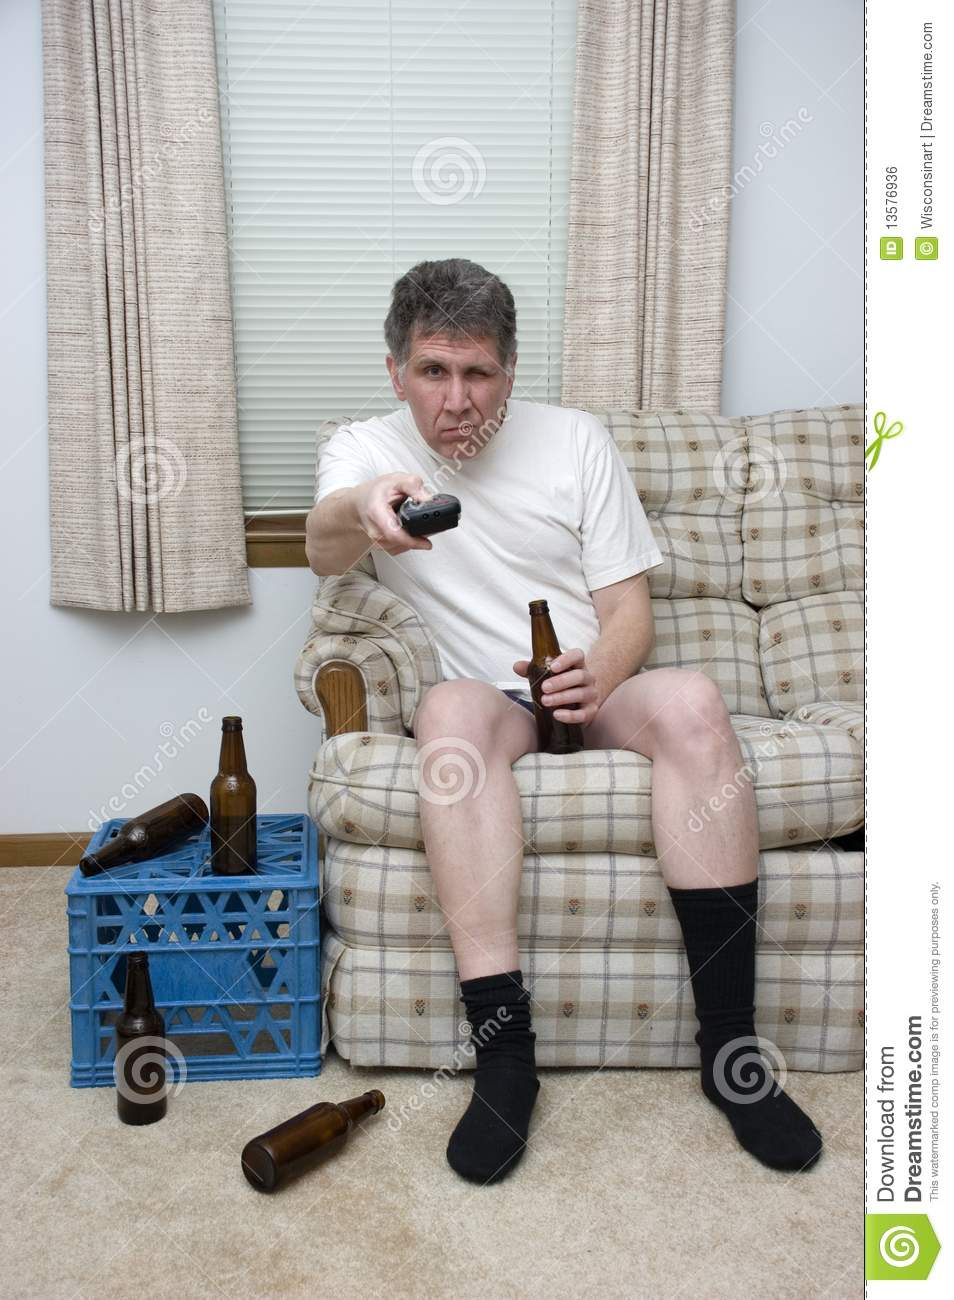 Lazy Man Couch Potato Slob Drunk With TV Remote